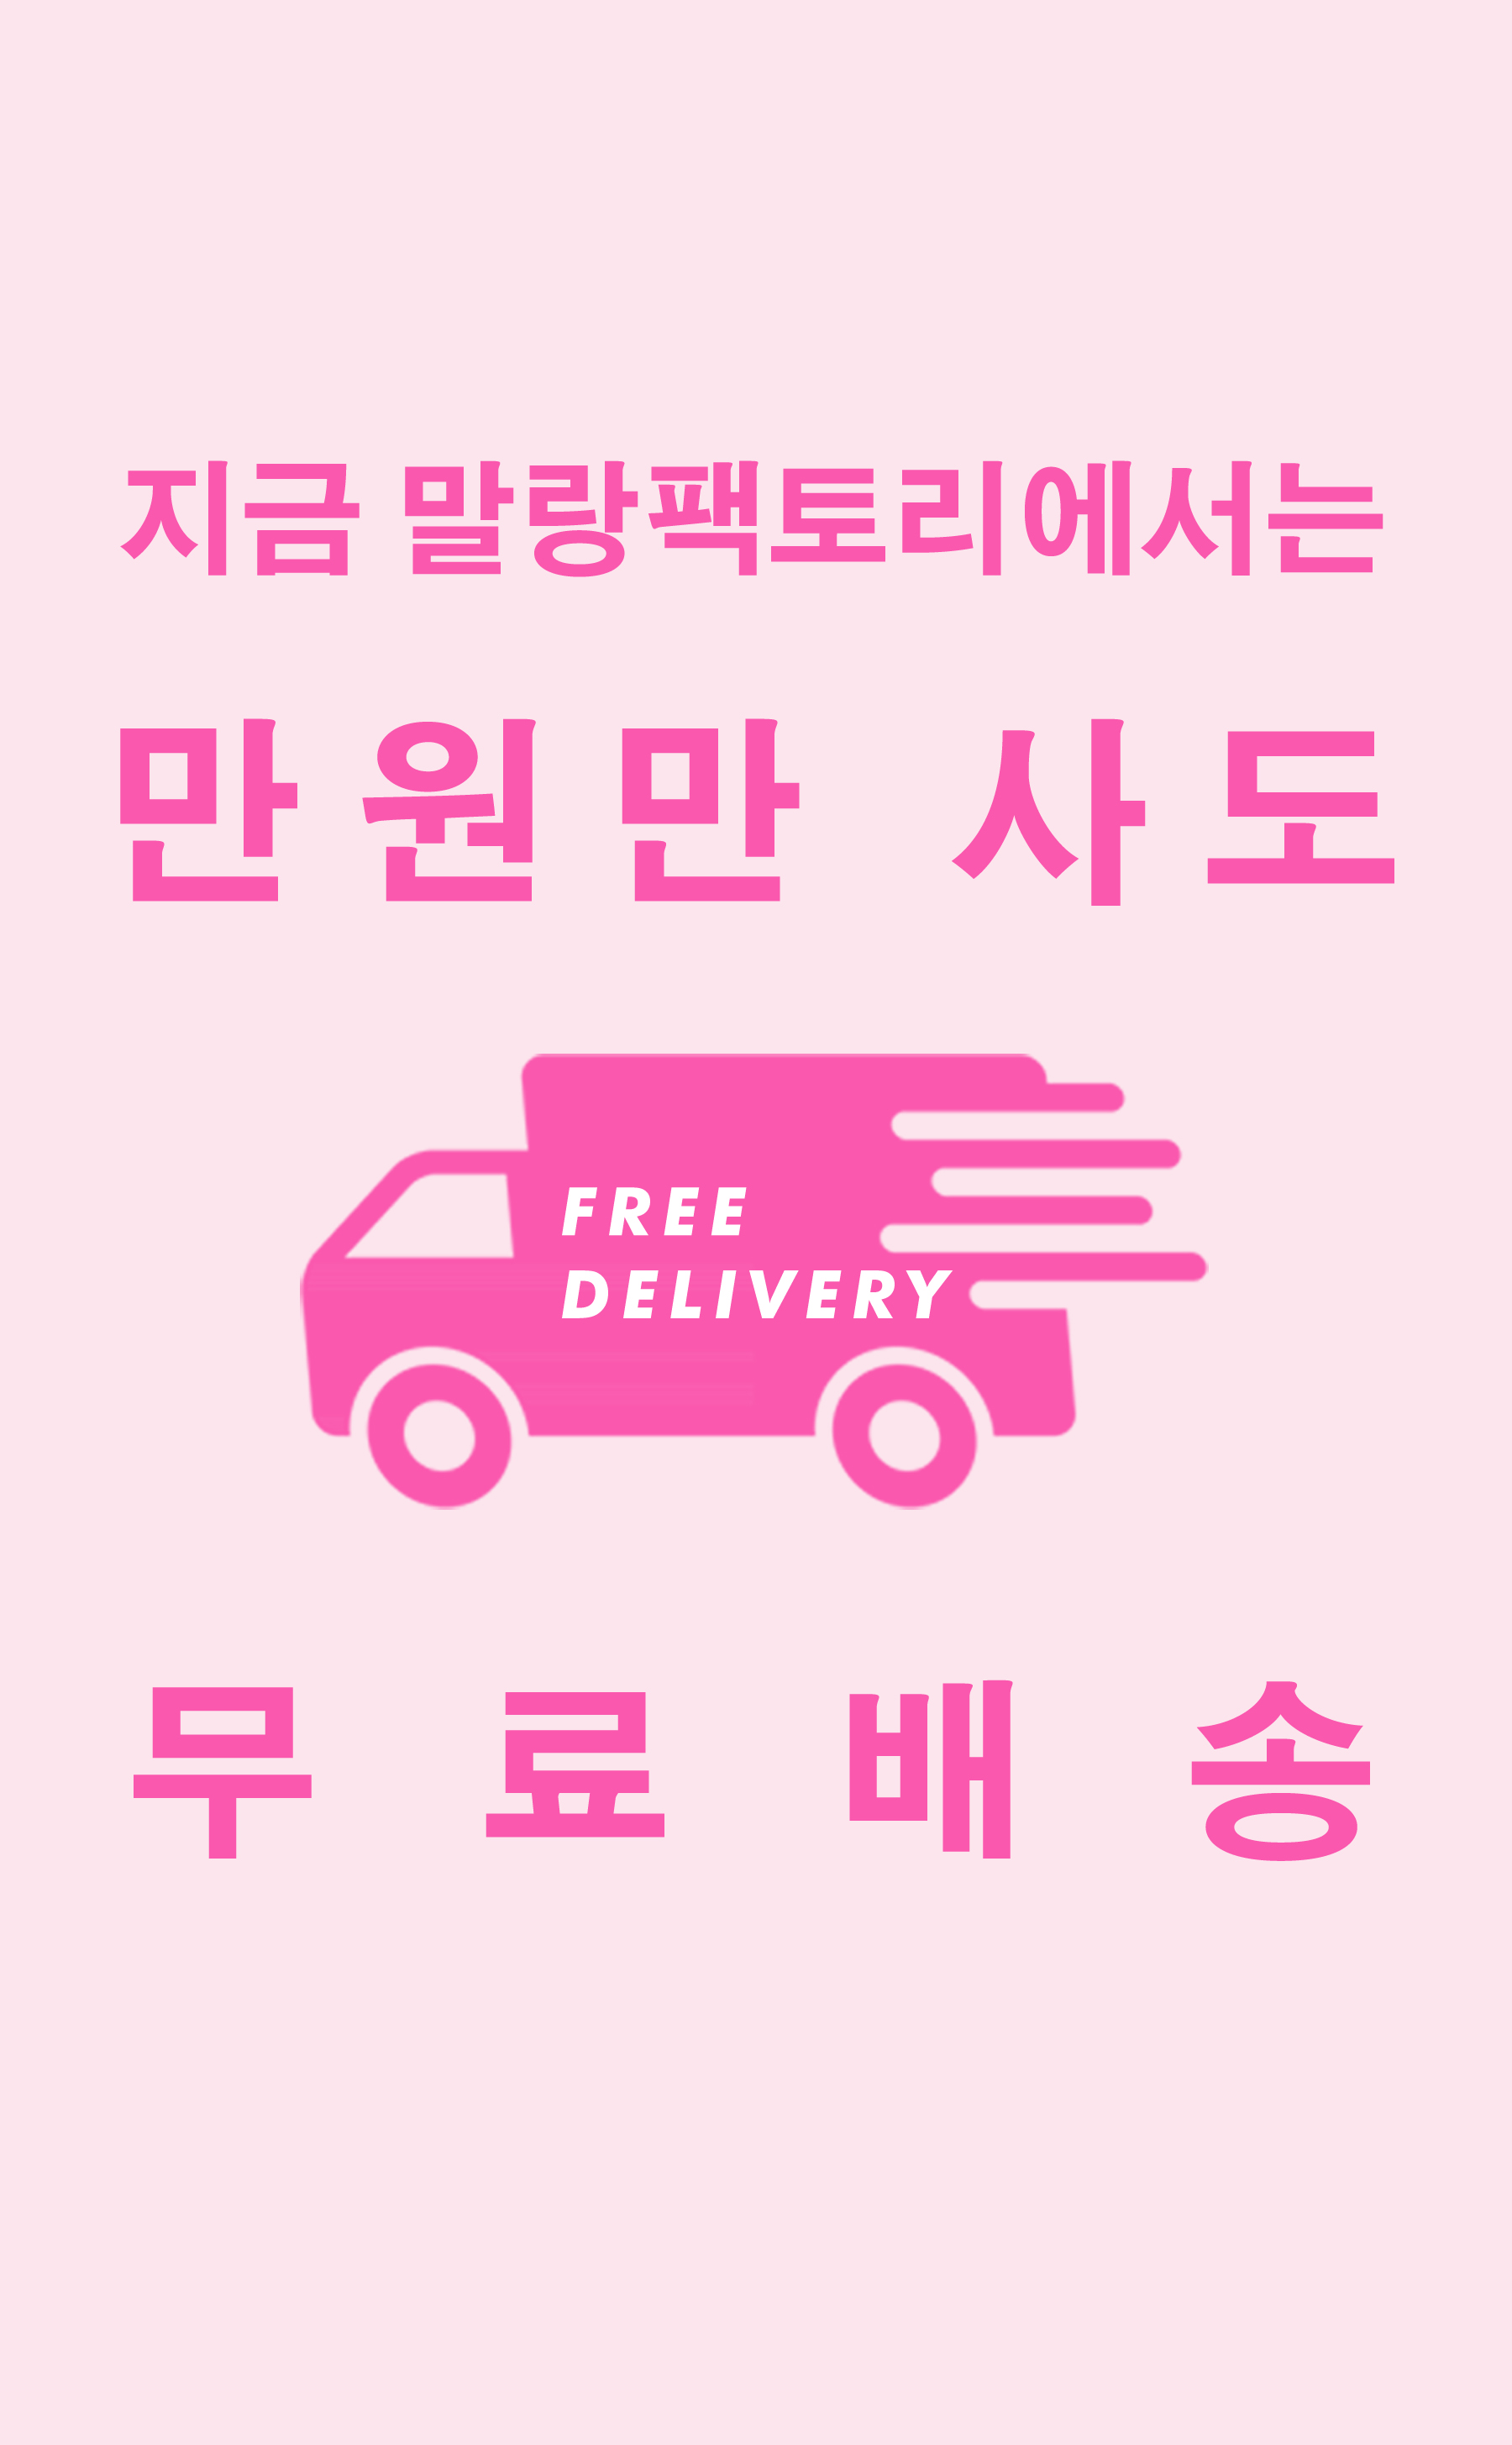 FREE DELIVERY MOBILE